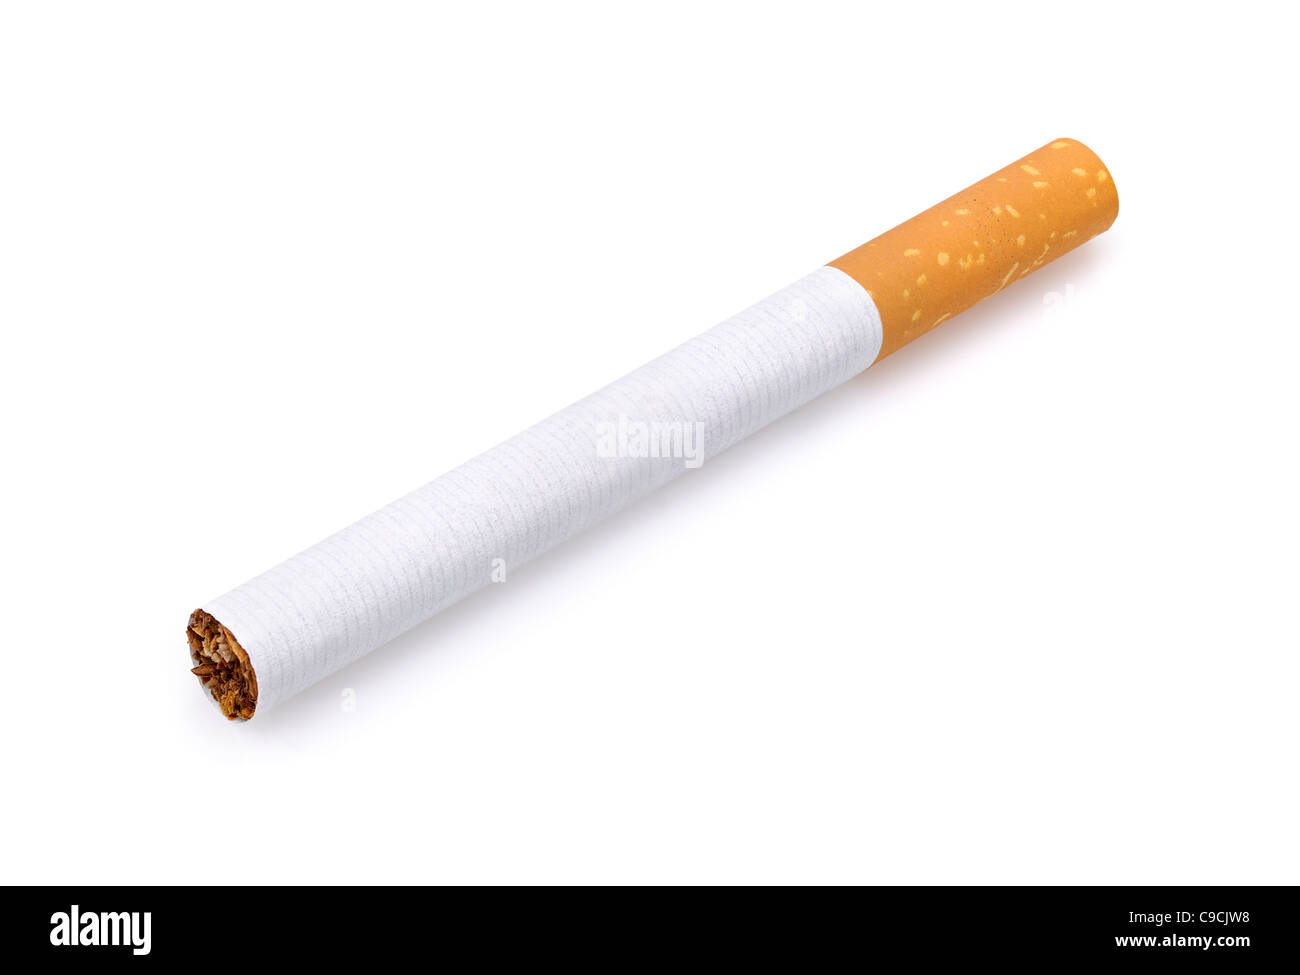 Cigarette, Cut Out. - Stock Image